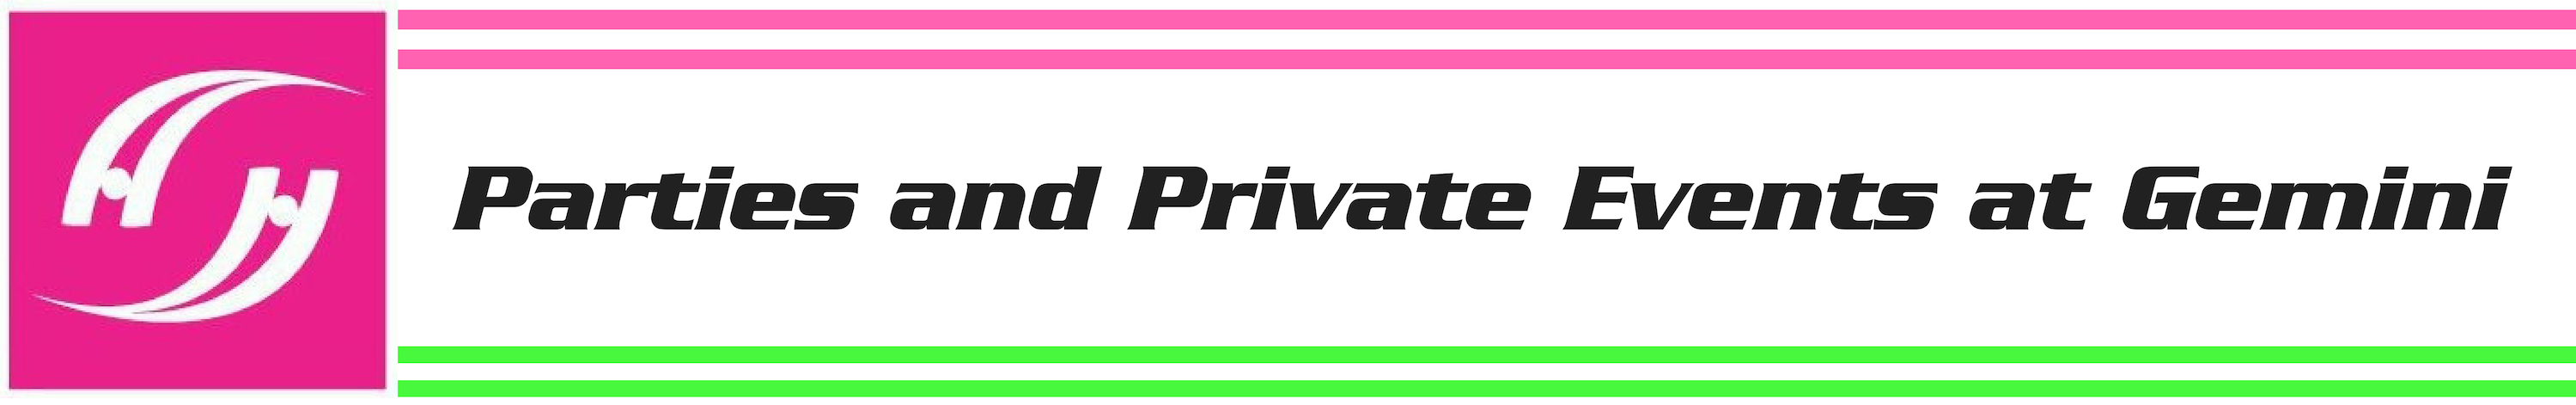 Parties and Private Events (2)